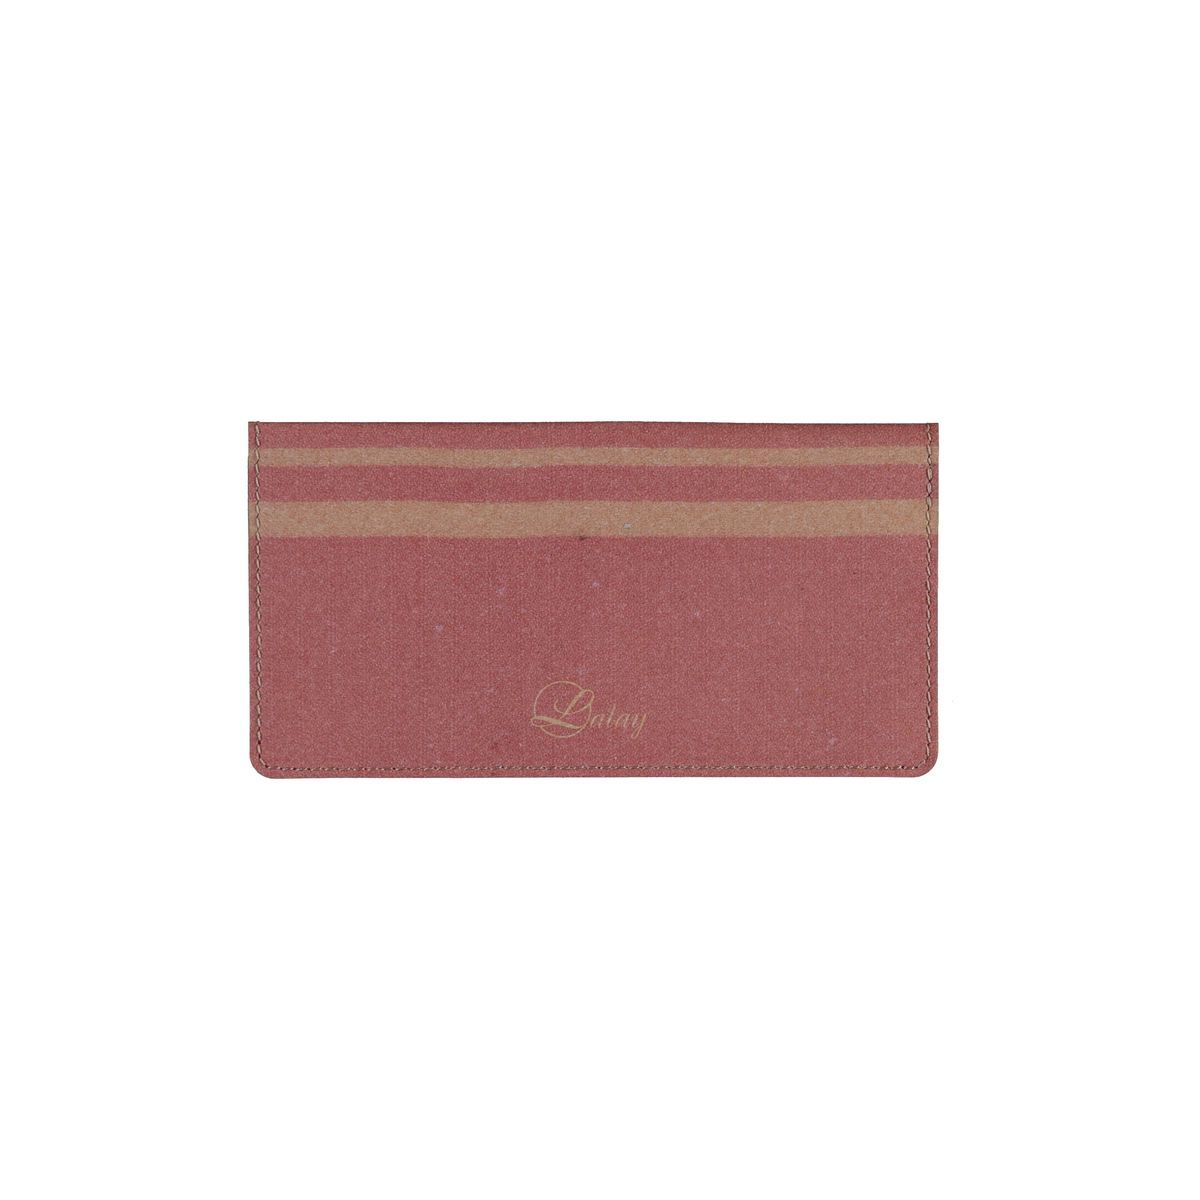 Bag Leather - Dusty Rose